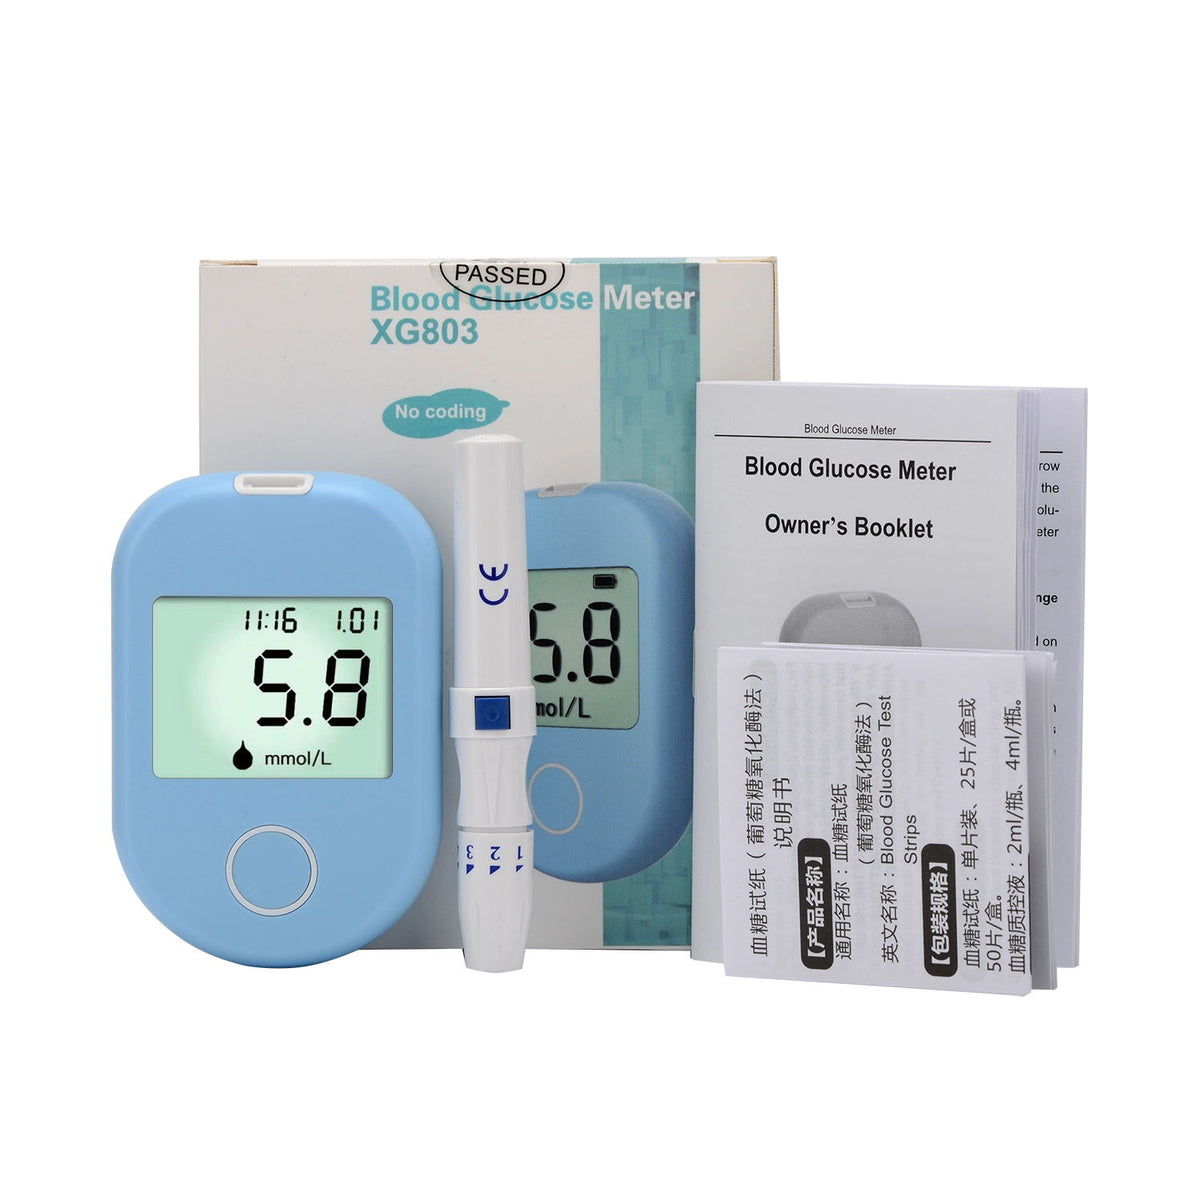 Blood Glucose Meter Test Machine (50 uses included)